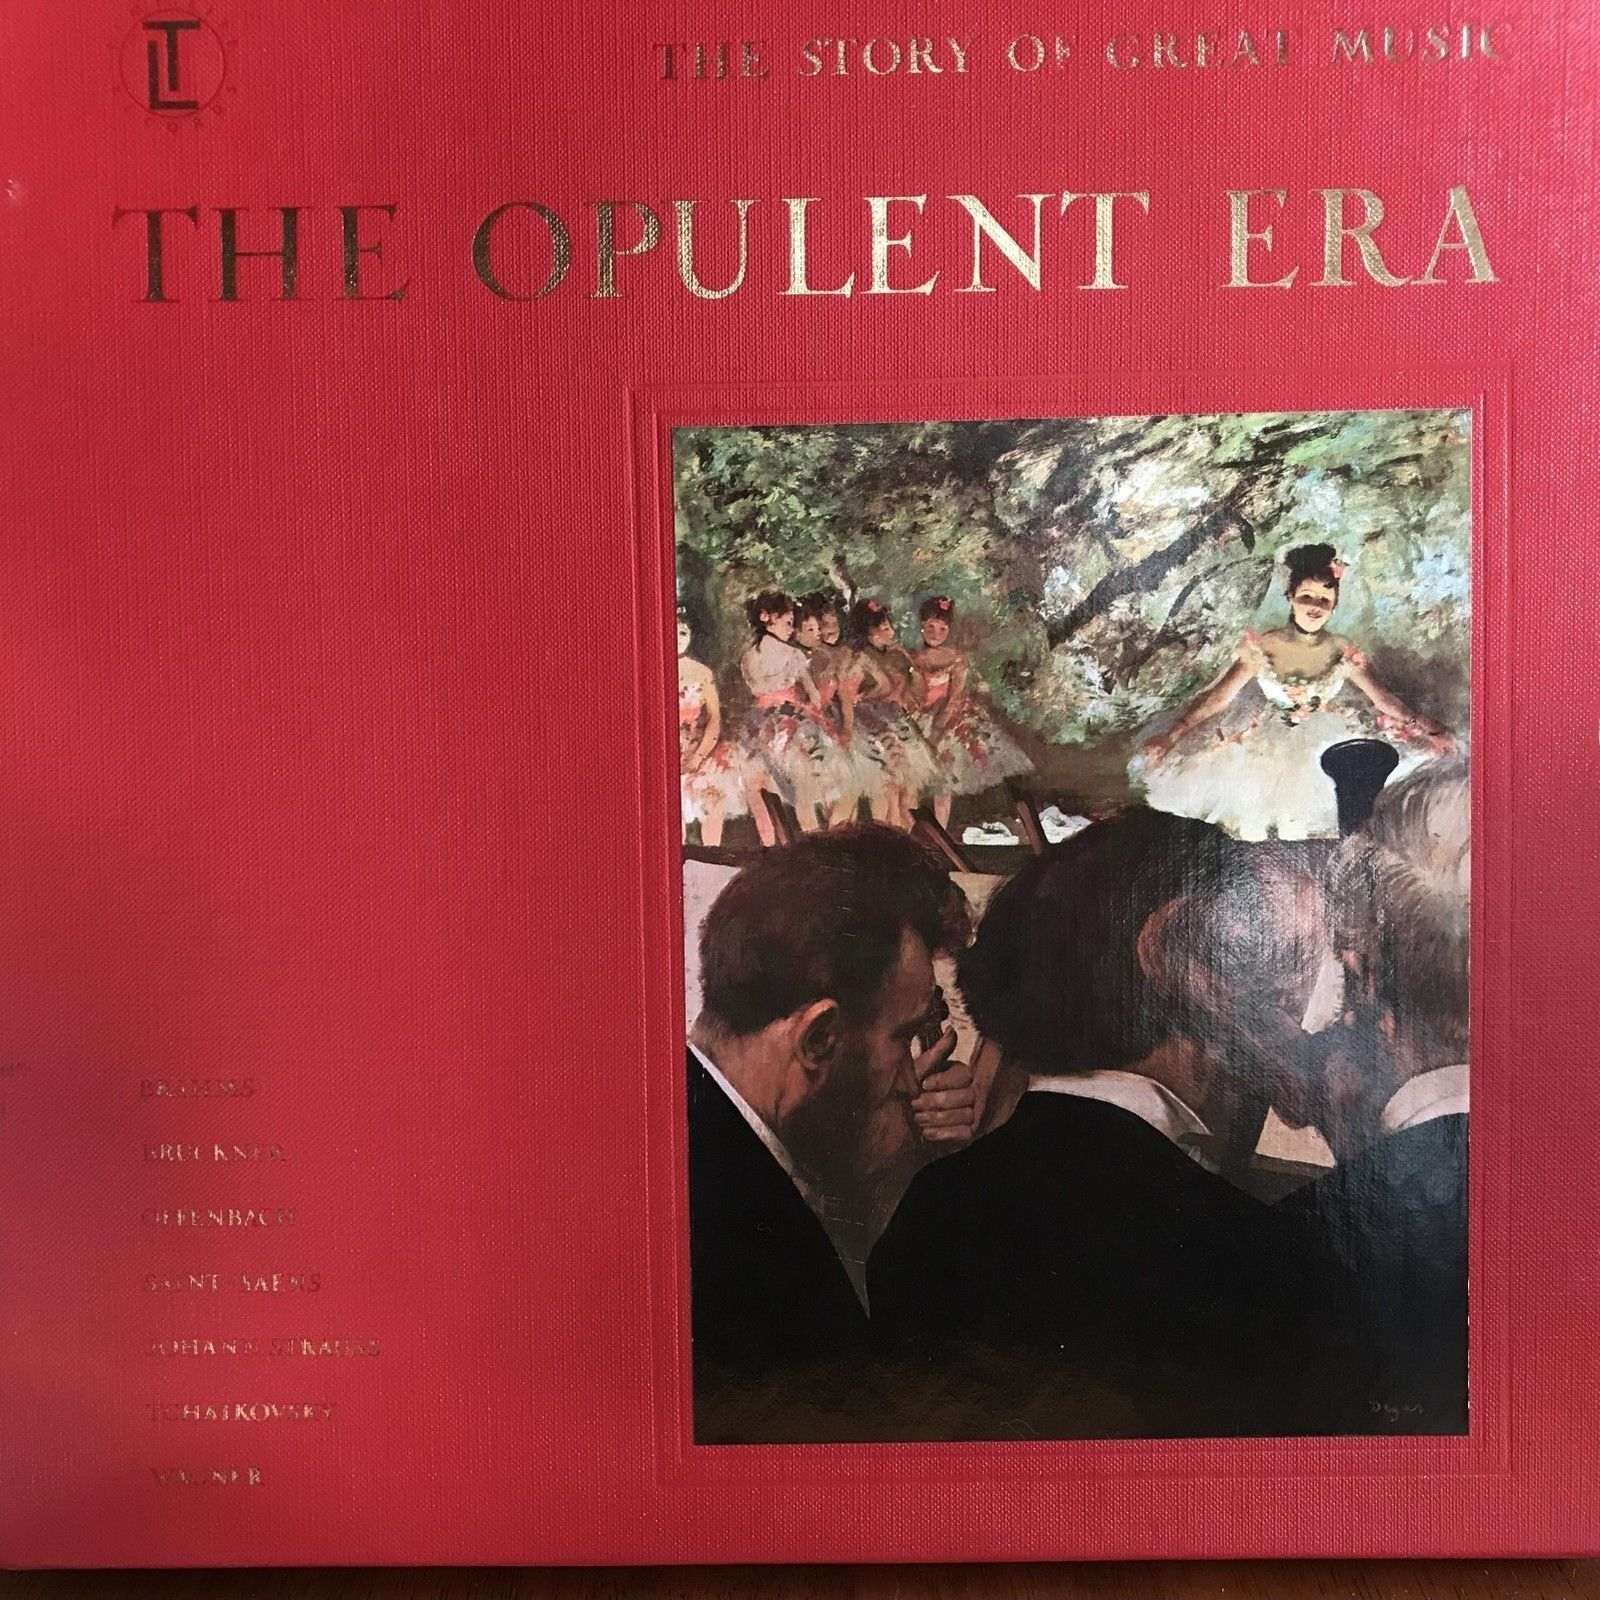 Primary image for Opulent Era Time Life Story Great Music 4 Record Set book listening guide 142